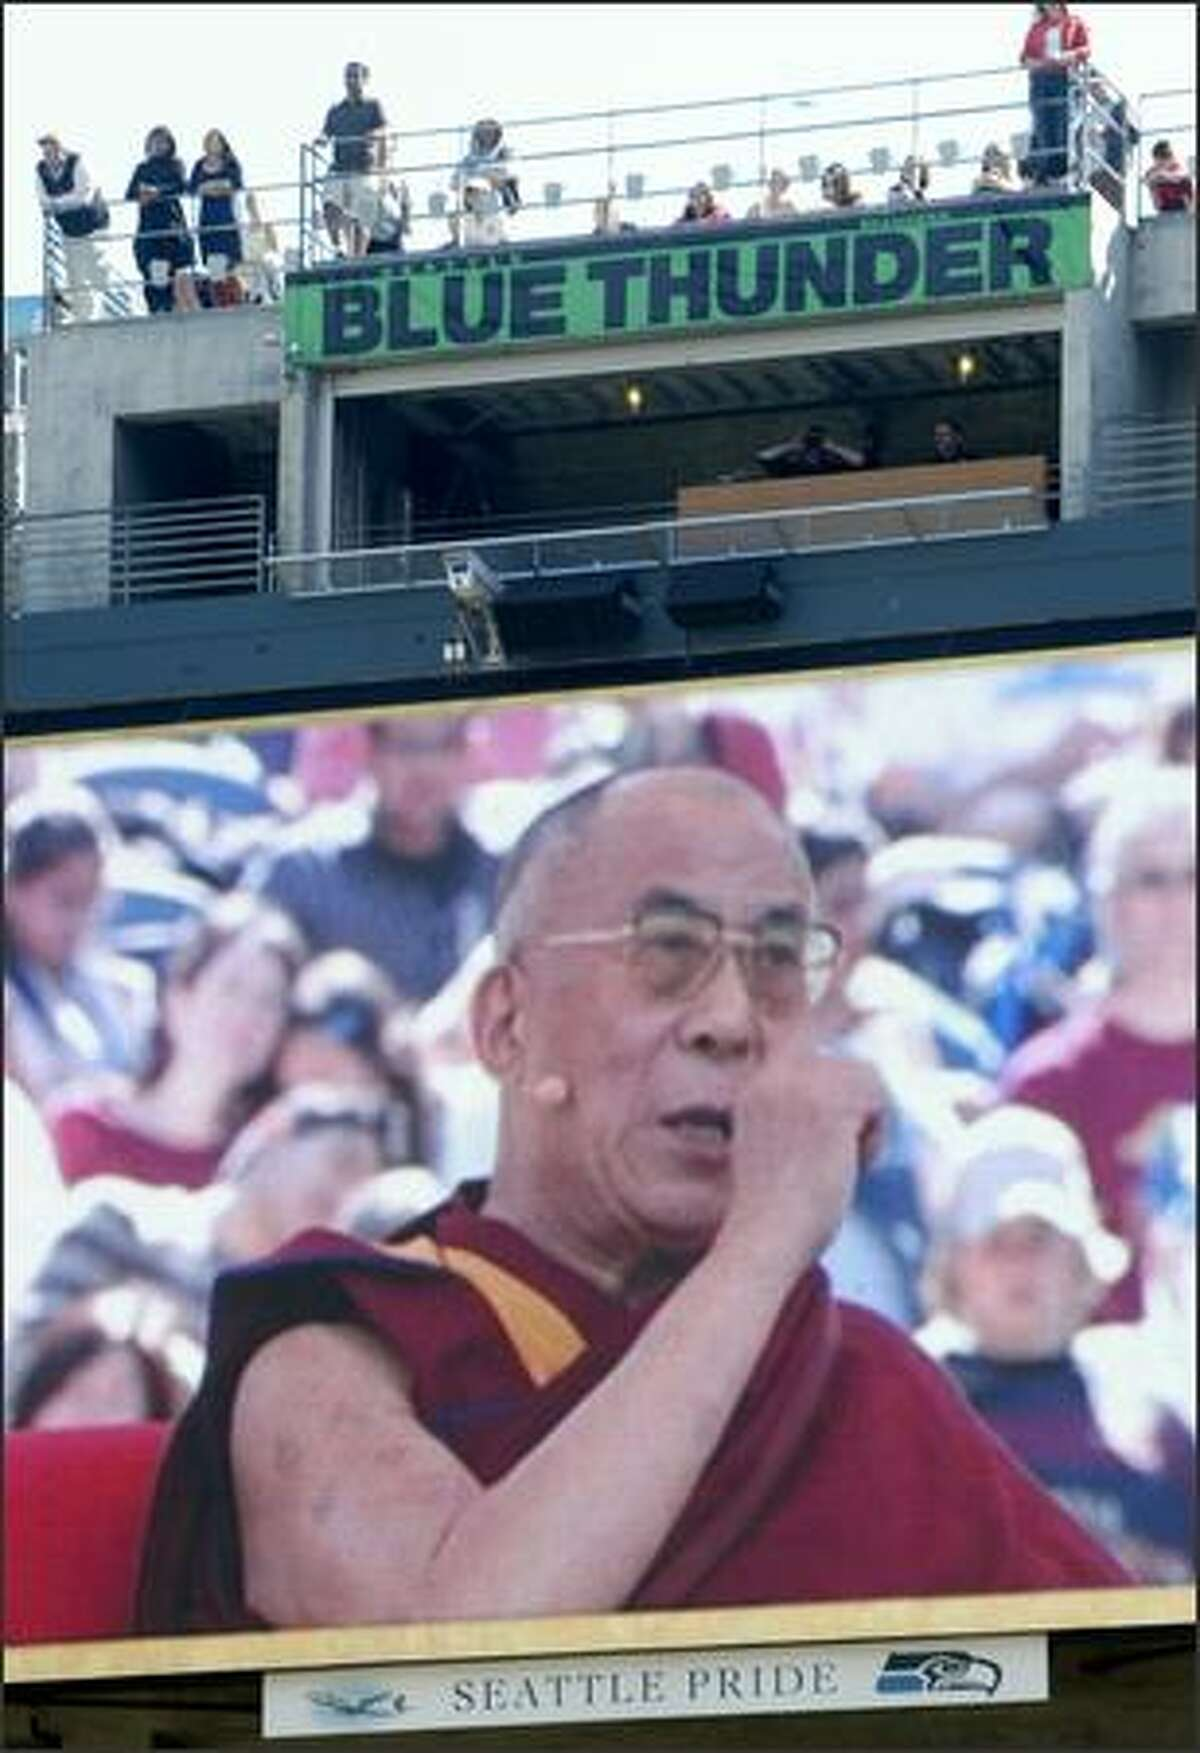 The Dalai Lama is projected on the big screen as he speaks to a Qwest Field crowd about compassion.